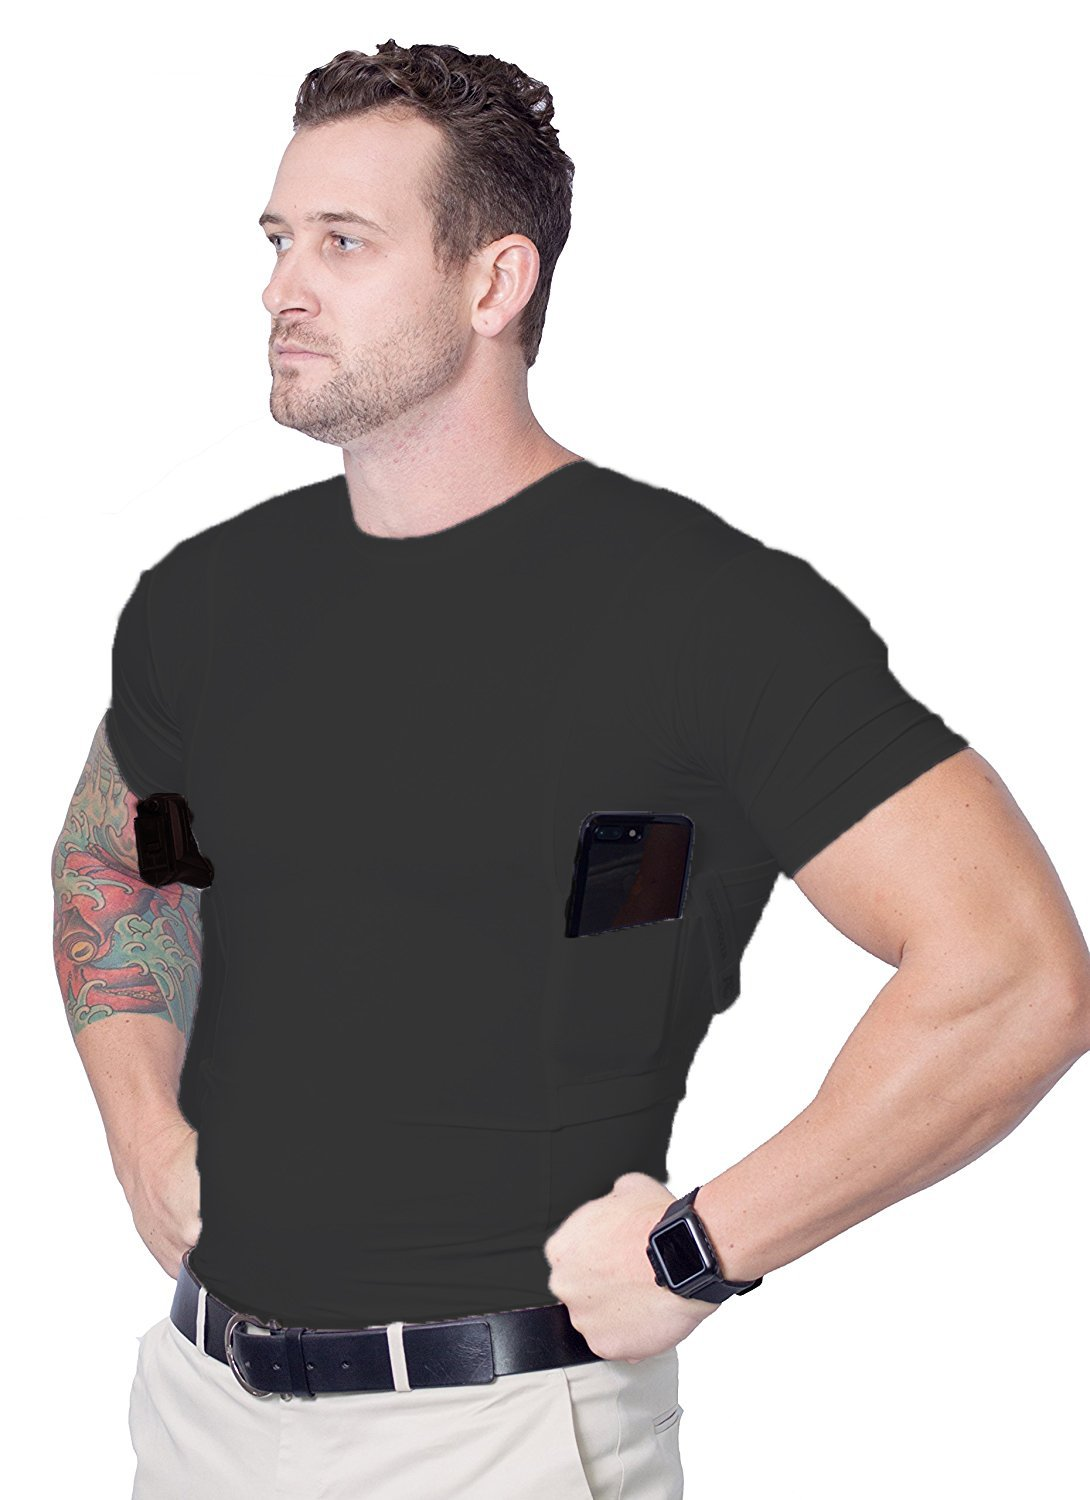 AC Undercover Concealed Carry Crew Neck Tshirt/CCW Tactical Clothing/Concealed Clothing REF. 511 (Black) (Black 3-Pack, X-Large) by AC Undercover (Image #3)